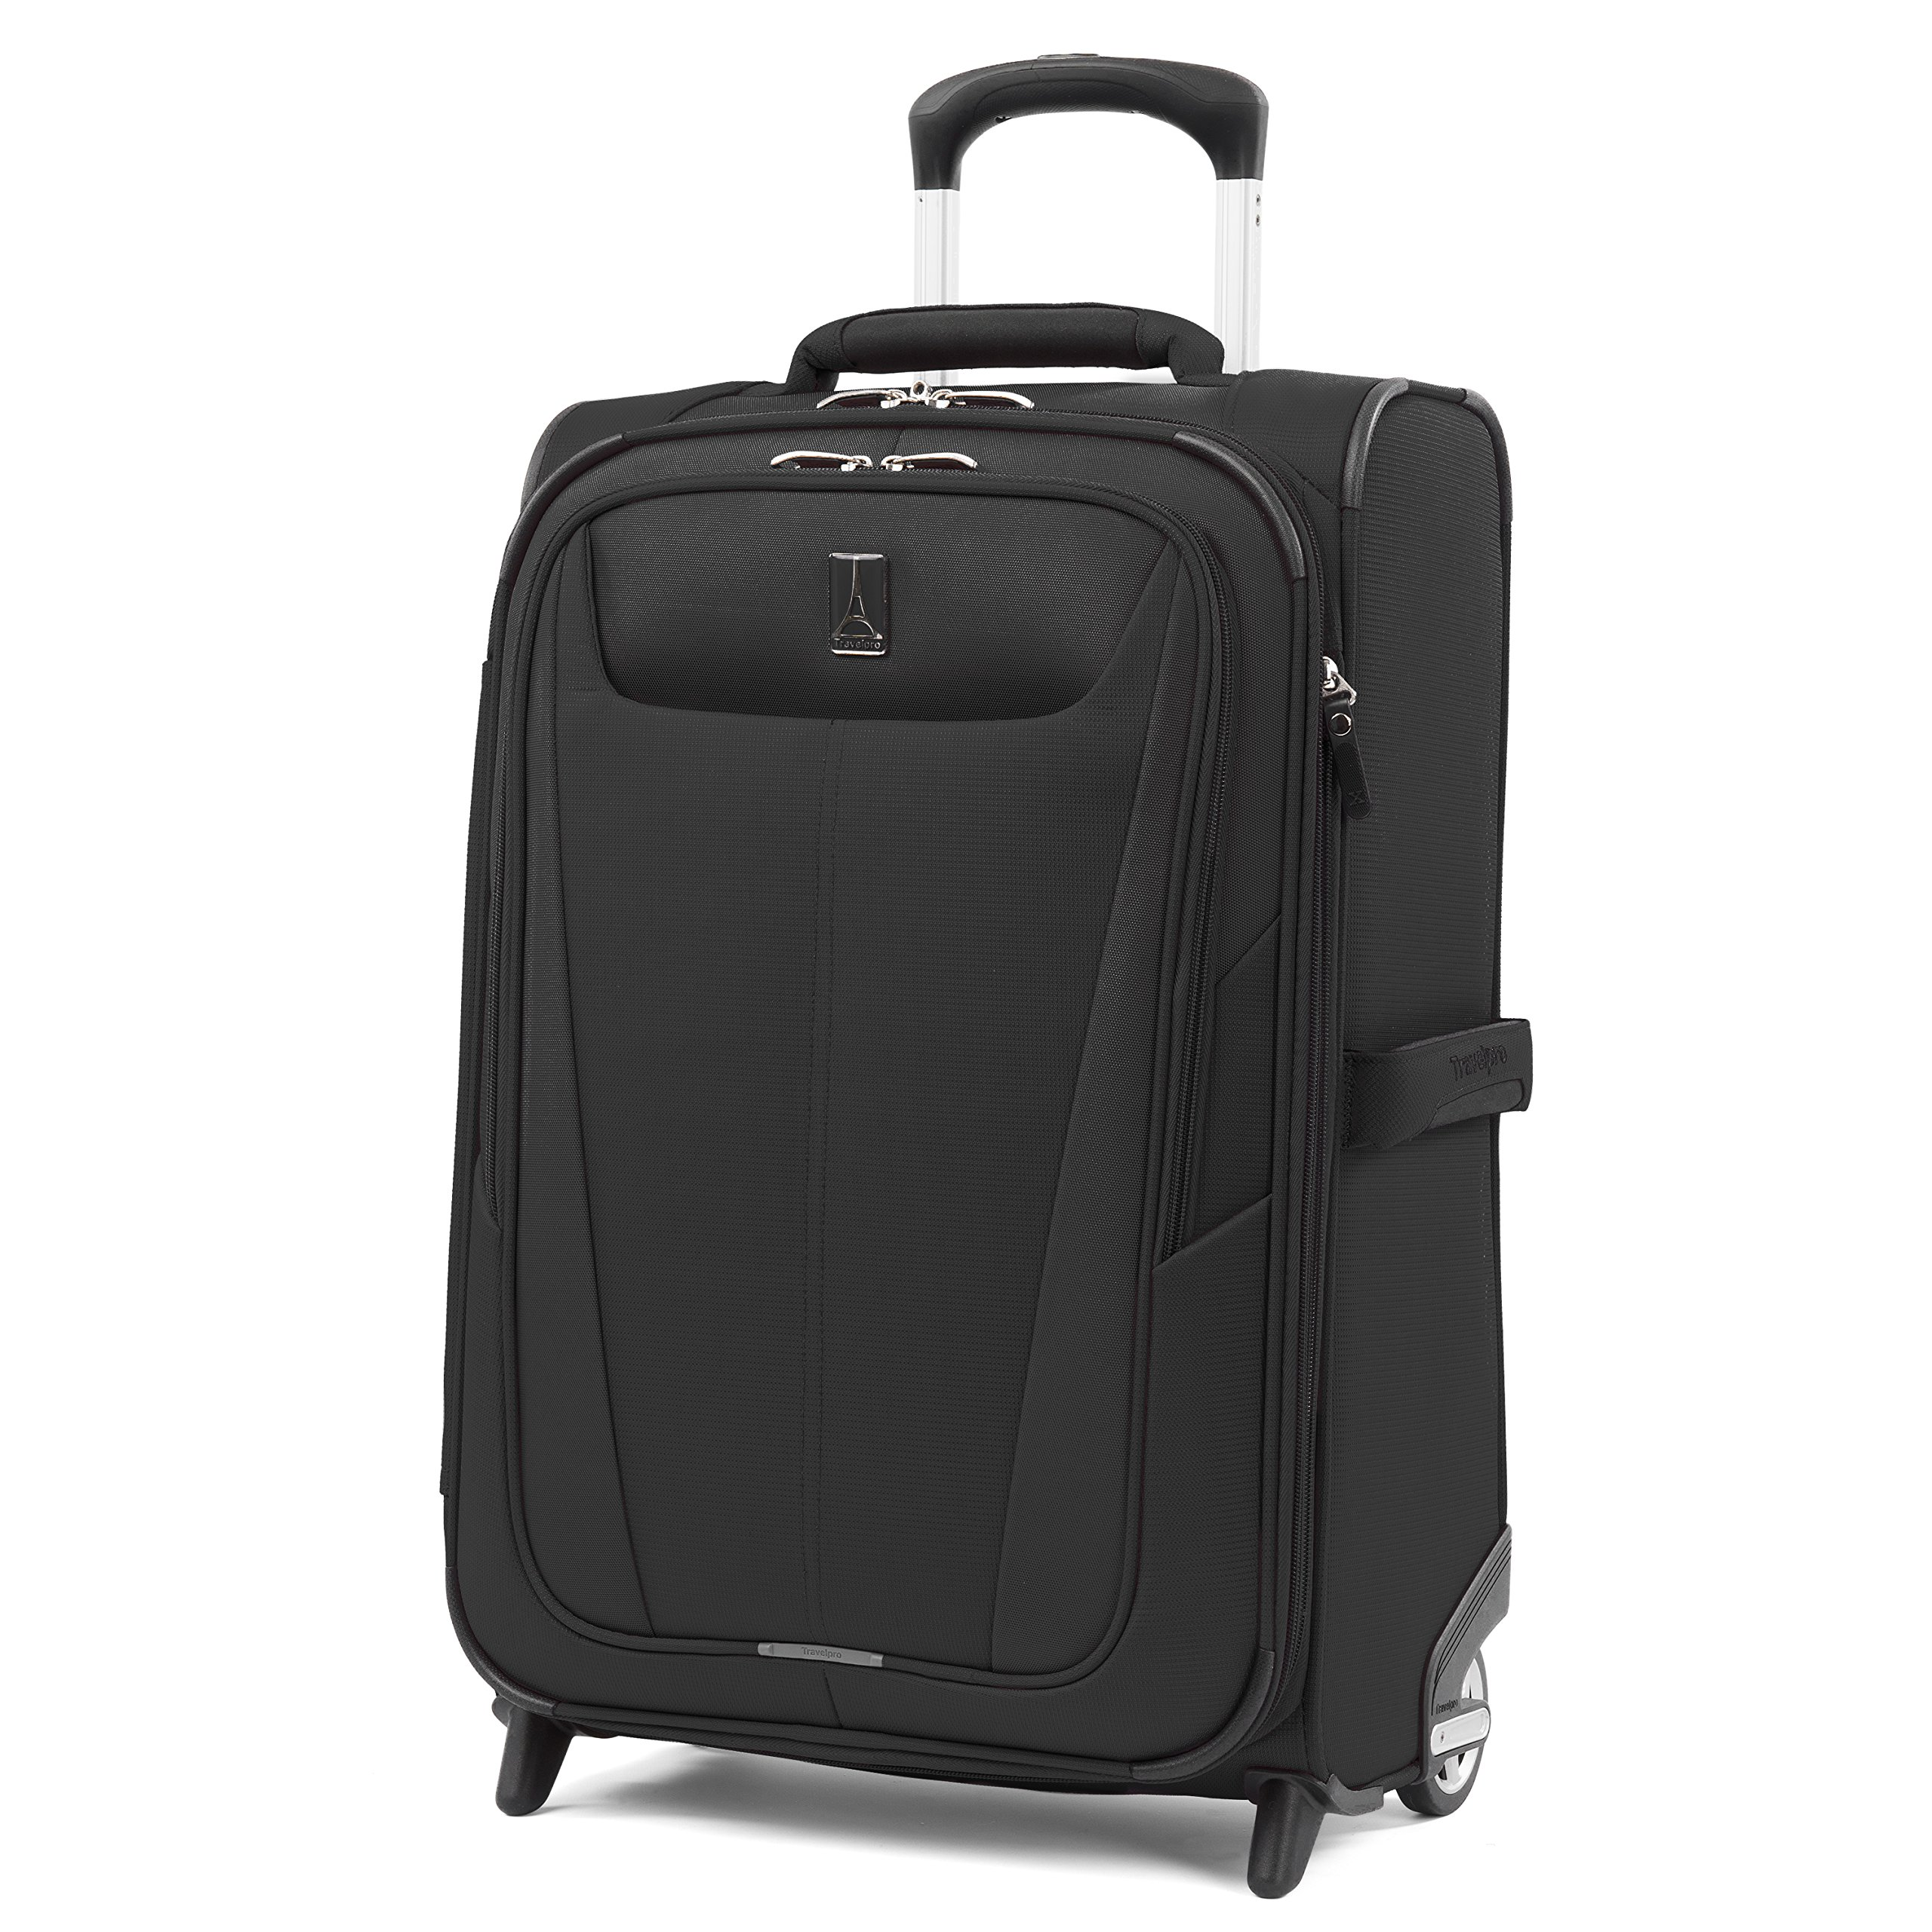 Travelpro Maxlite 5 22'' Expandable Rollaboard Carry-on Suitcase, Black